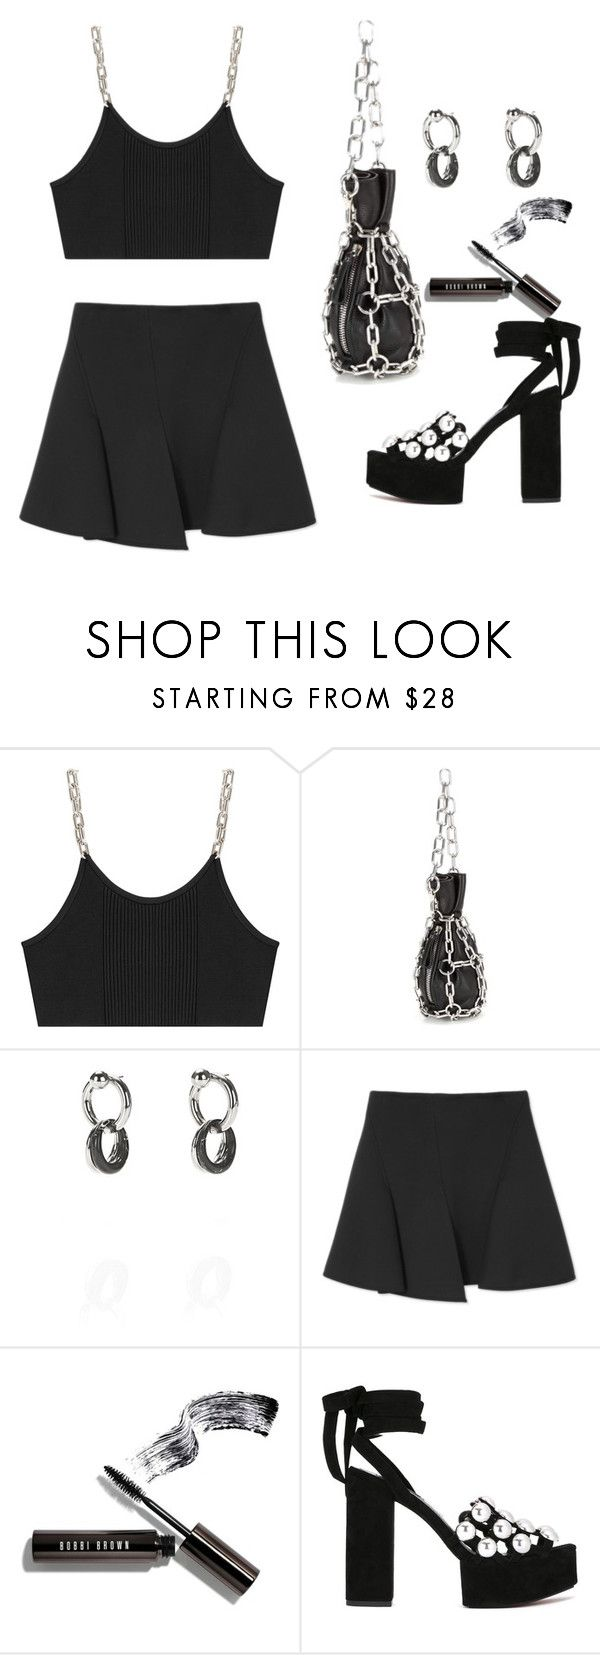 """Untitled #4232"" by lilaclynn ❤ liked on Polyvore featuring Alexander Wang, Bobbi Brown Cosmetics, NYFW and AlexanderWang"